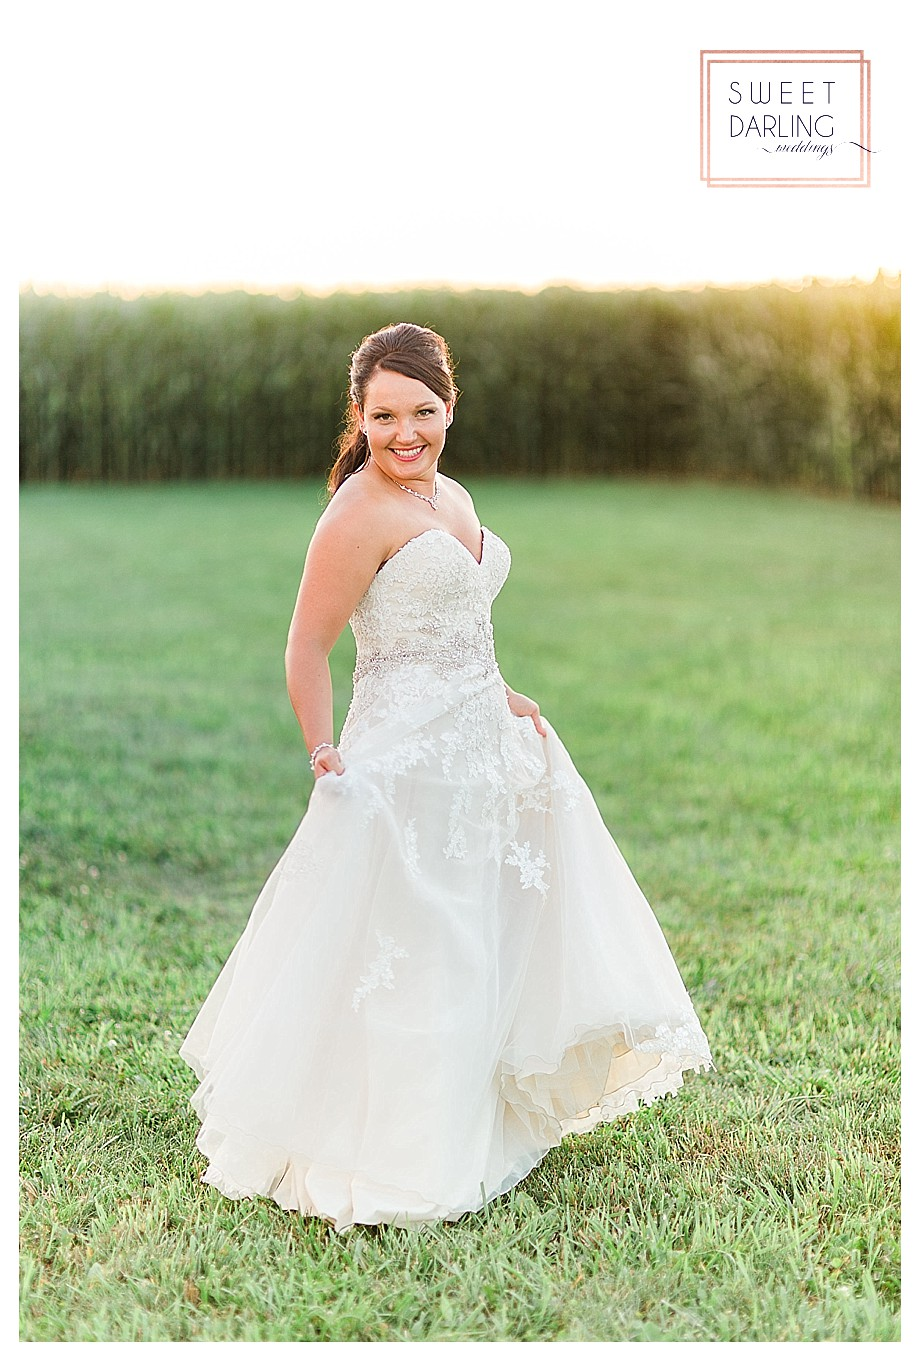 bride in strapless gown at country wedding